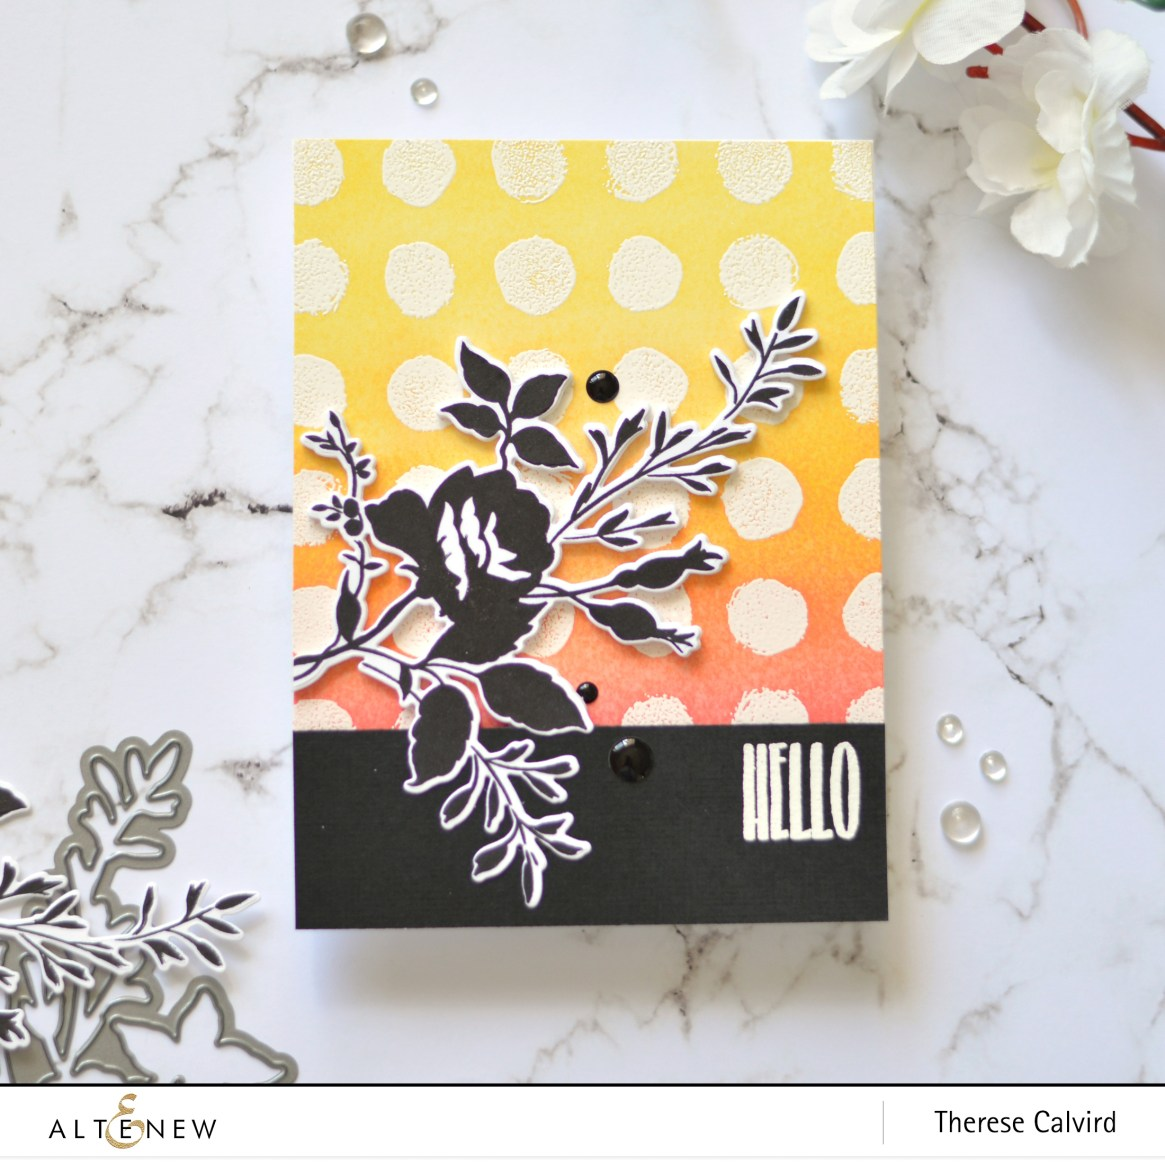 Altenew - Watercolor Dots - Dainty Bouquet - Take 2 with Therese (card video) 1 copy